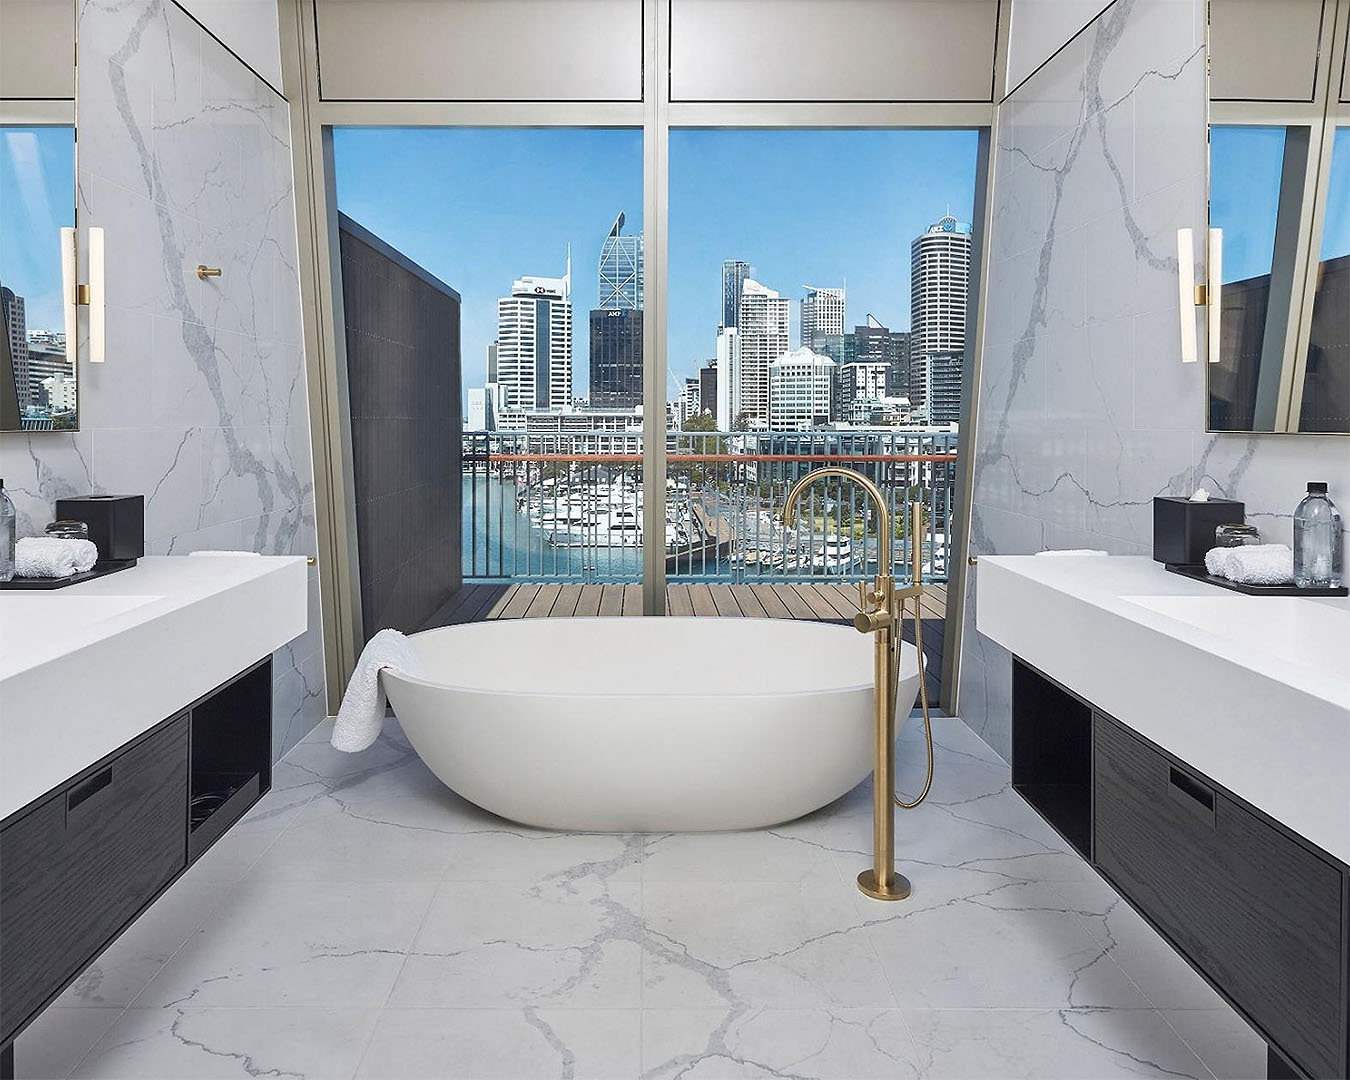 A bath in front of stunning views in a room at The Park Hyatt Auckland.